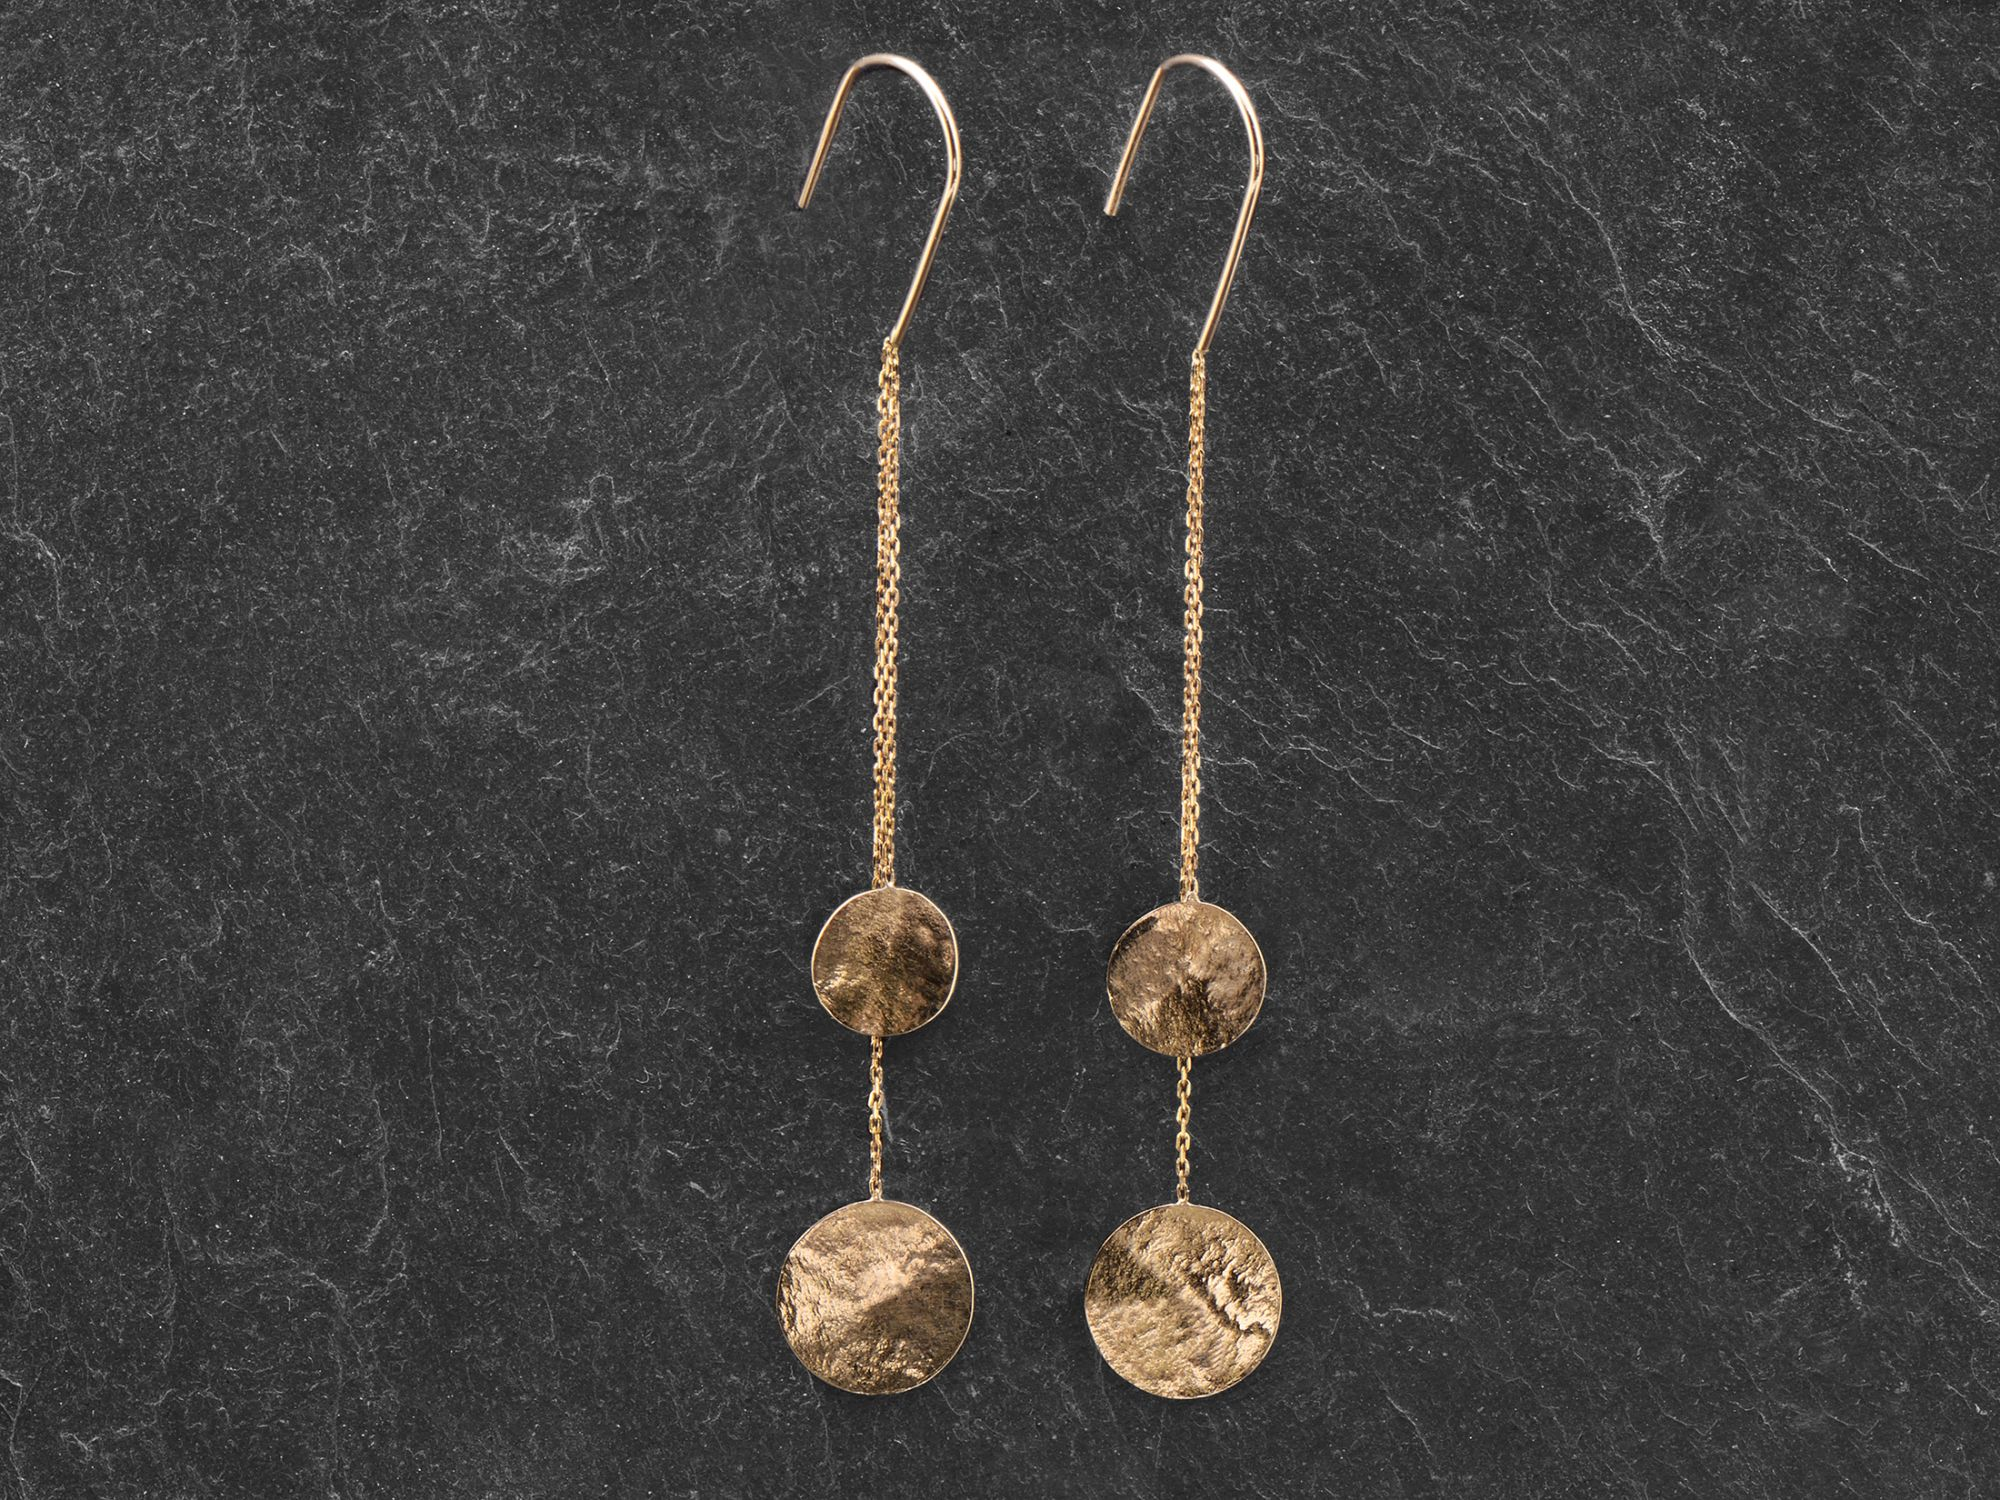 Daiquiri Sequins yellow gold earrings by Emmanuelle Zysman